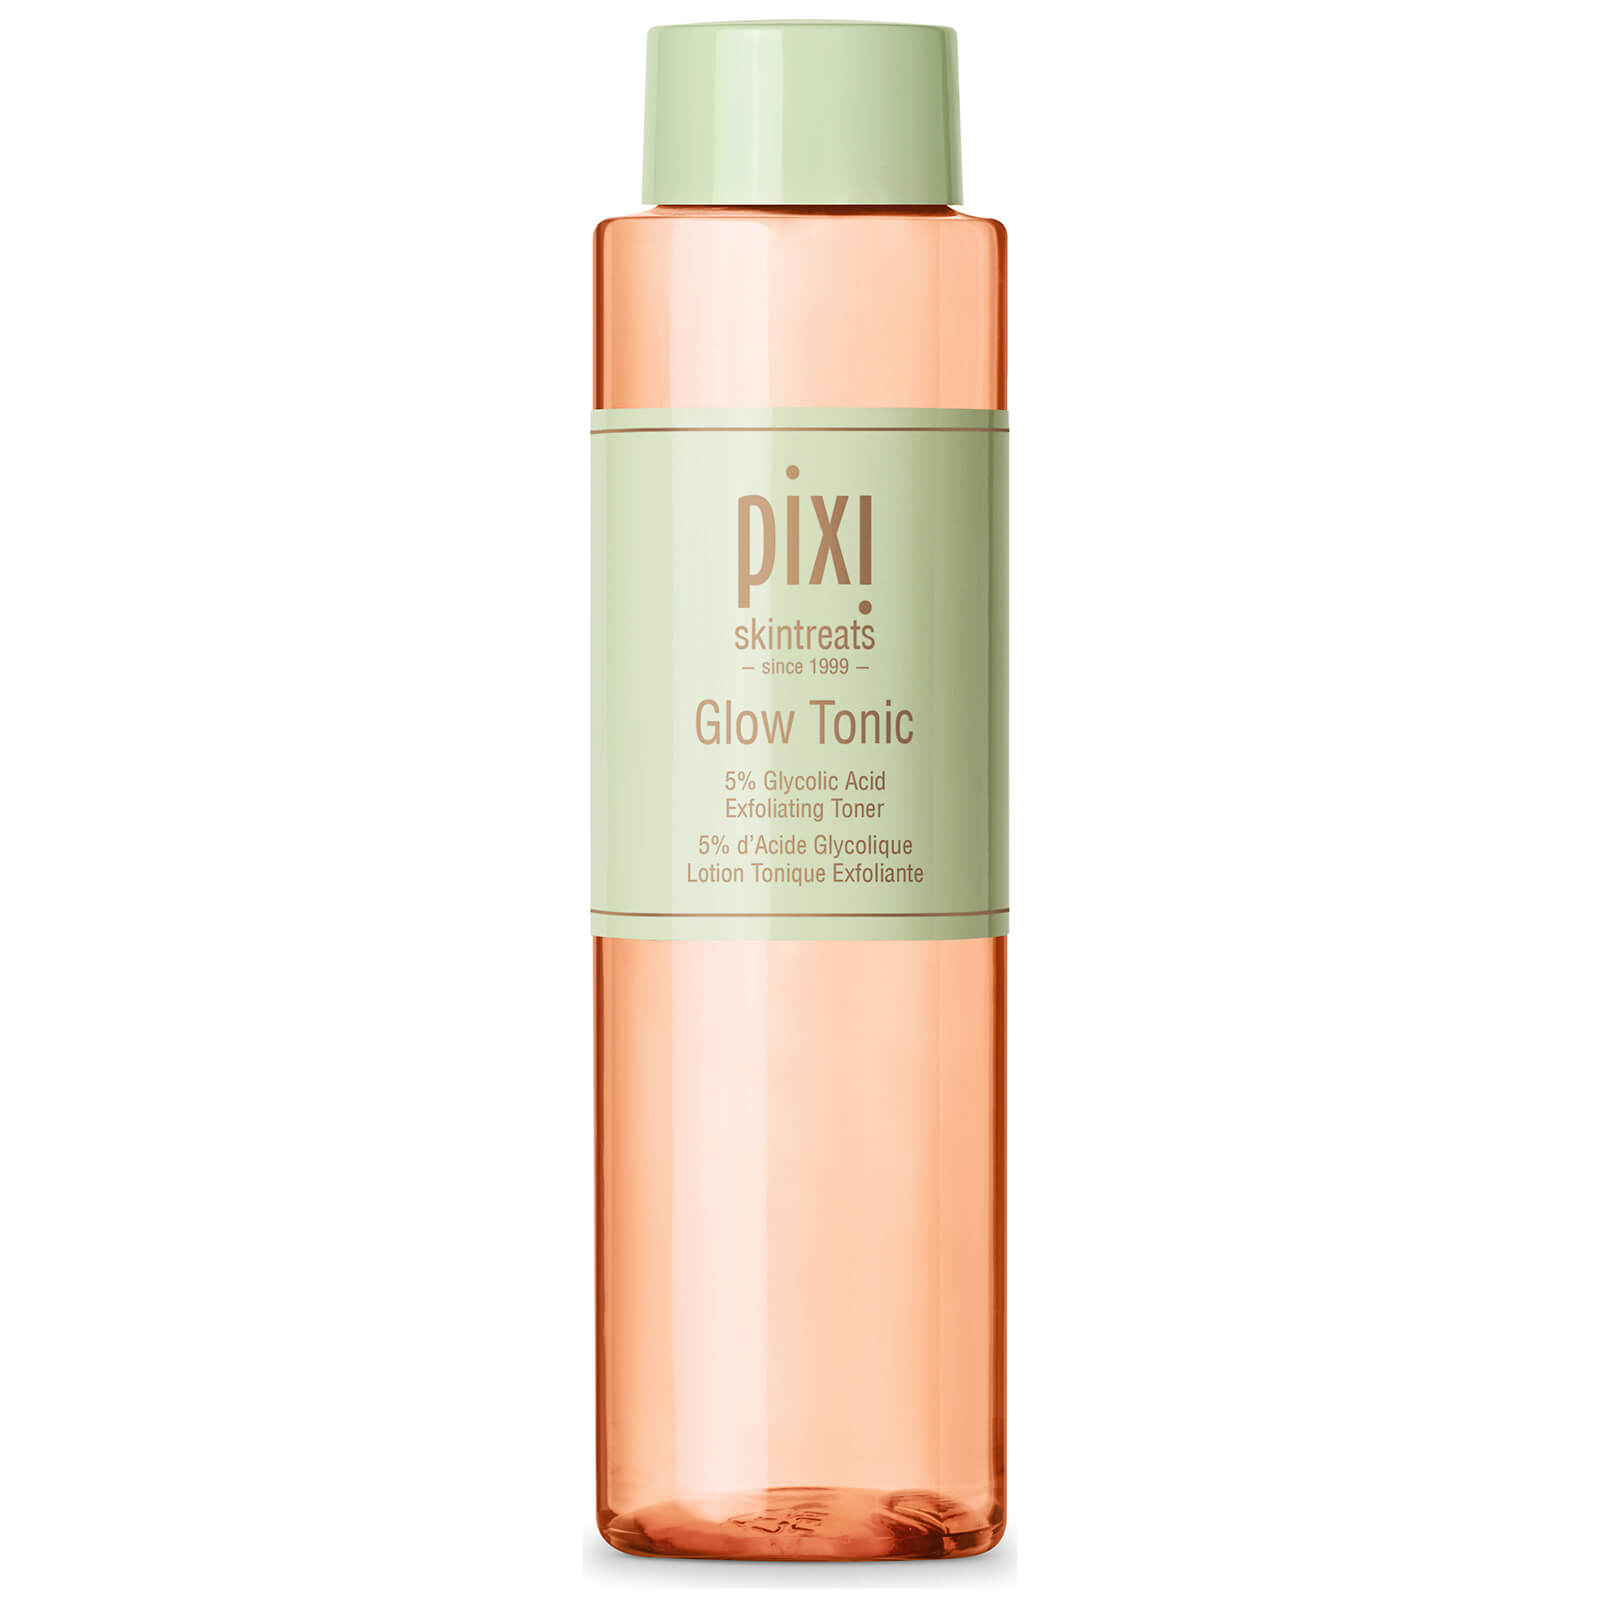 Let's start with one of our favourites…The PIXI Glow Tonic!